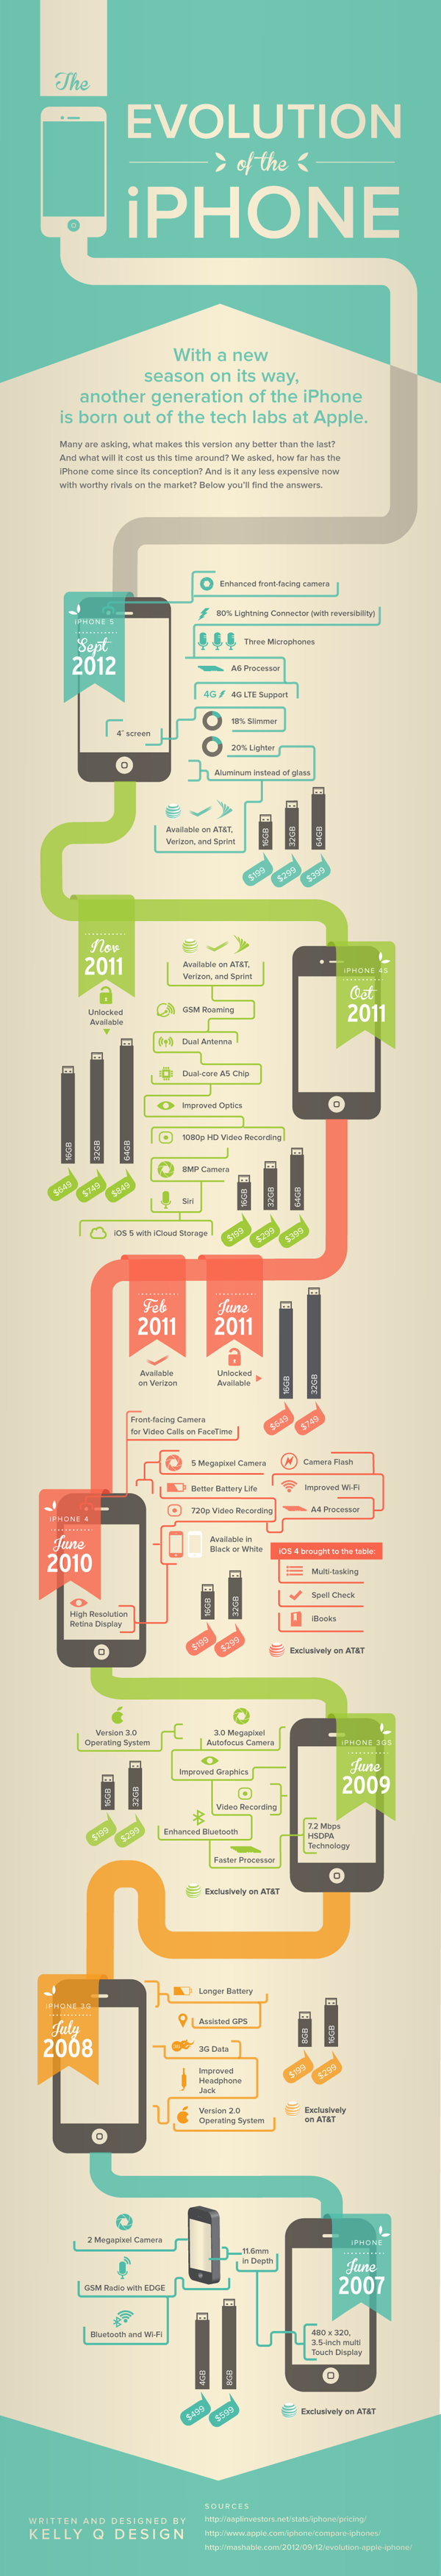 Interessante Grafik zur Entwicklung des iPhones-evolution-iphone-infographic.png